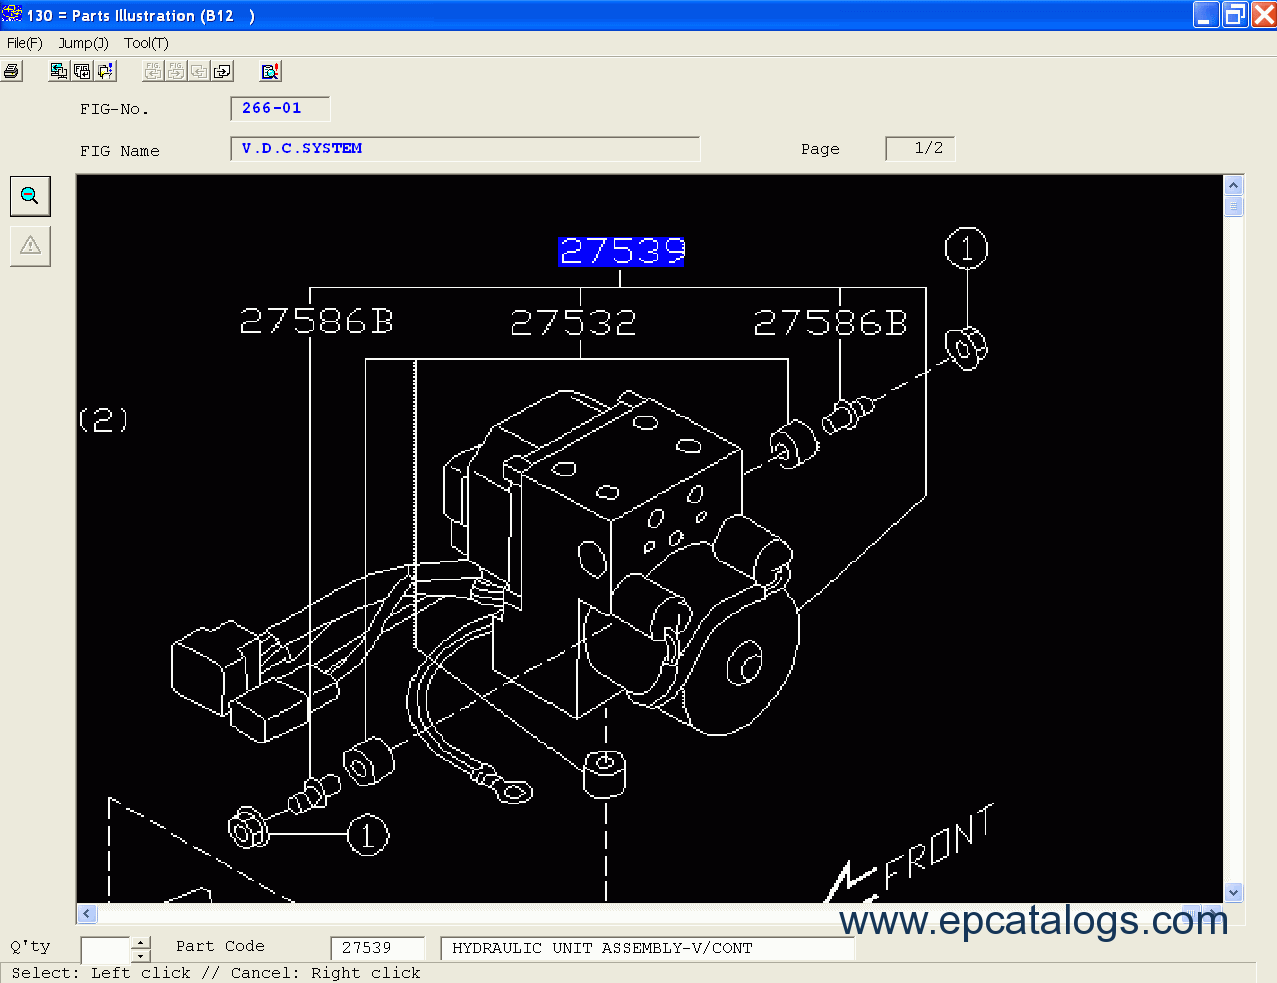 subaru europe fast 2014 spare parts catalog, spare parts catalog Subaru Impreza Parts Diagram Subaru Impreza Parts Diagram #38 subaru impreza parts diagram